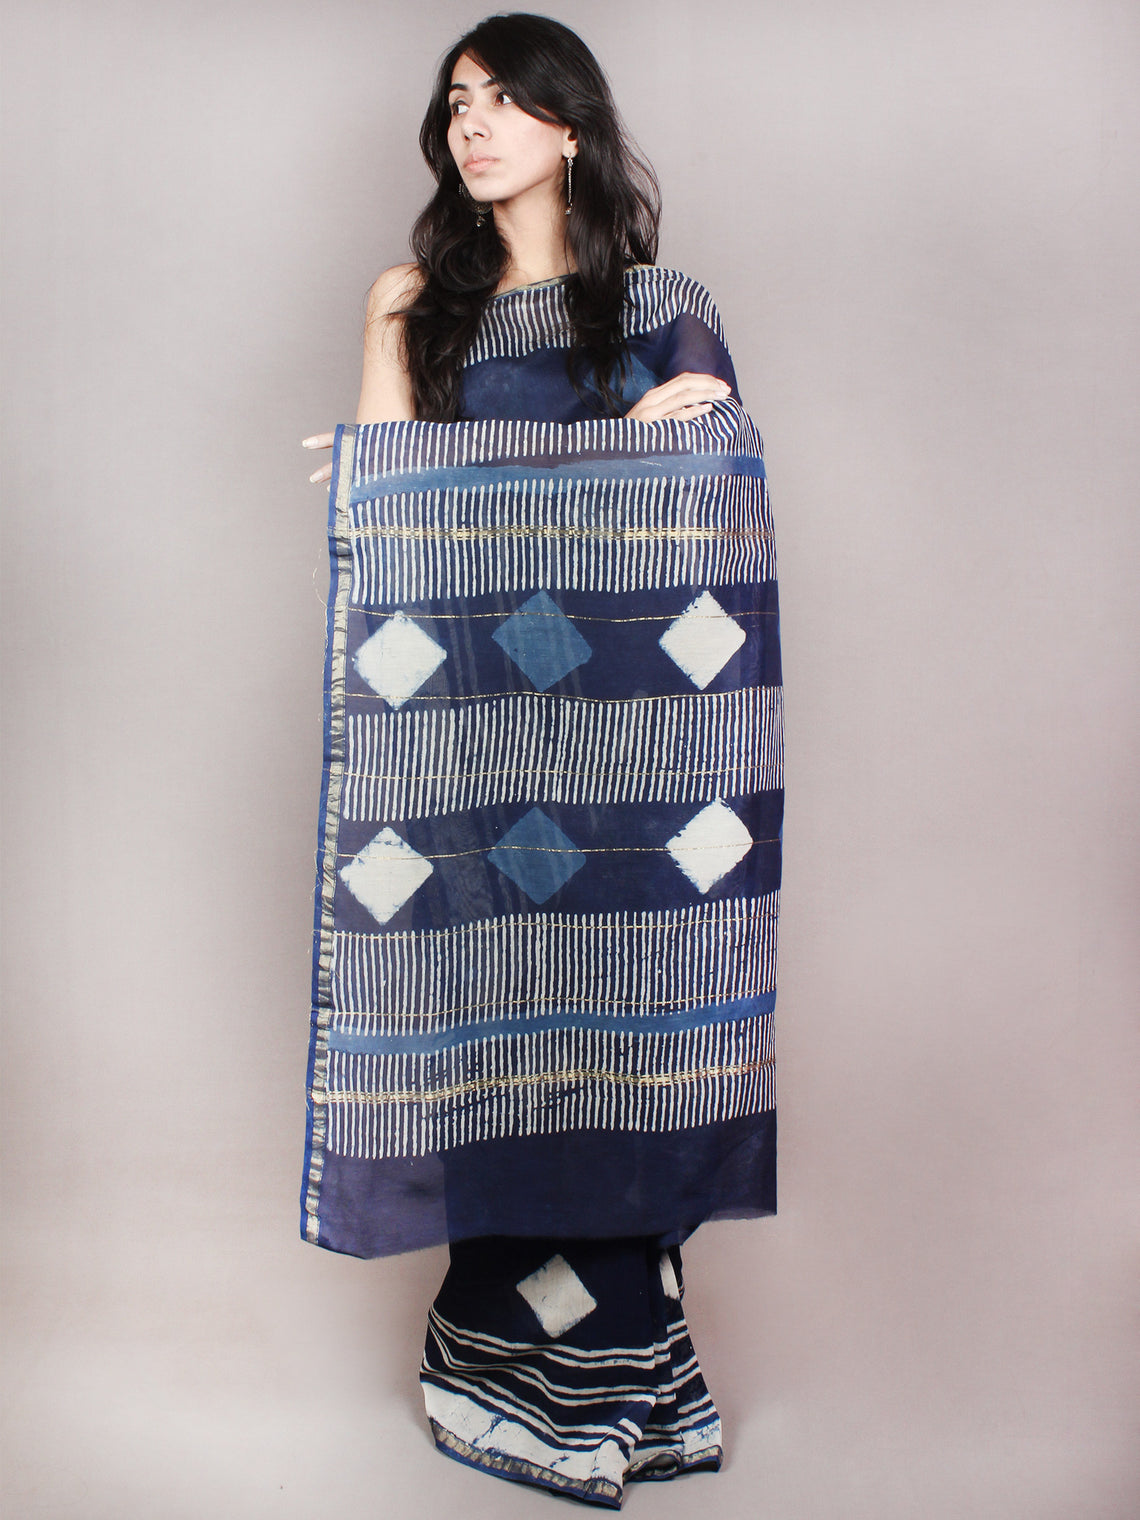 Indigo White Hand Block Printed in Natural Colors Chanderi Saree - S03170846